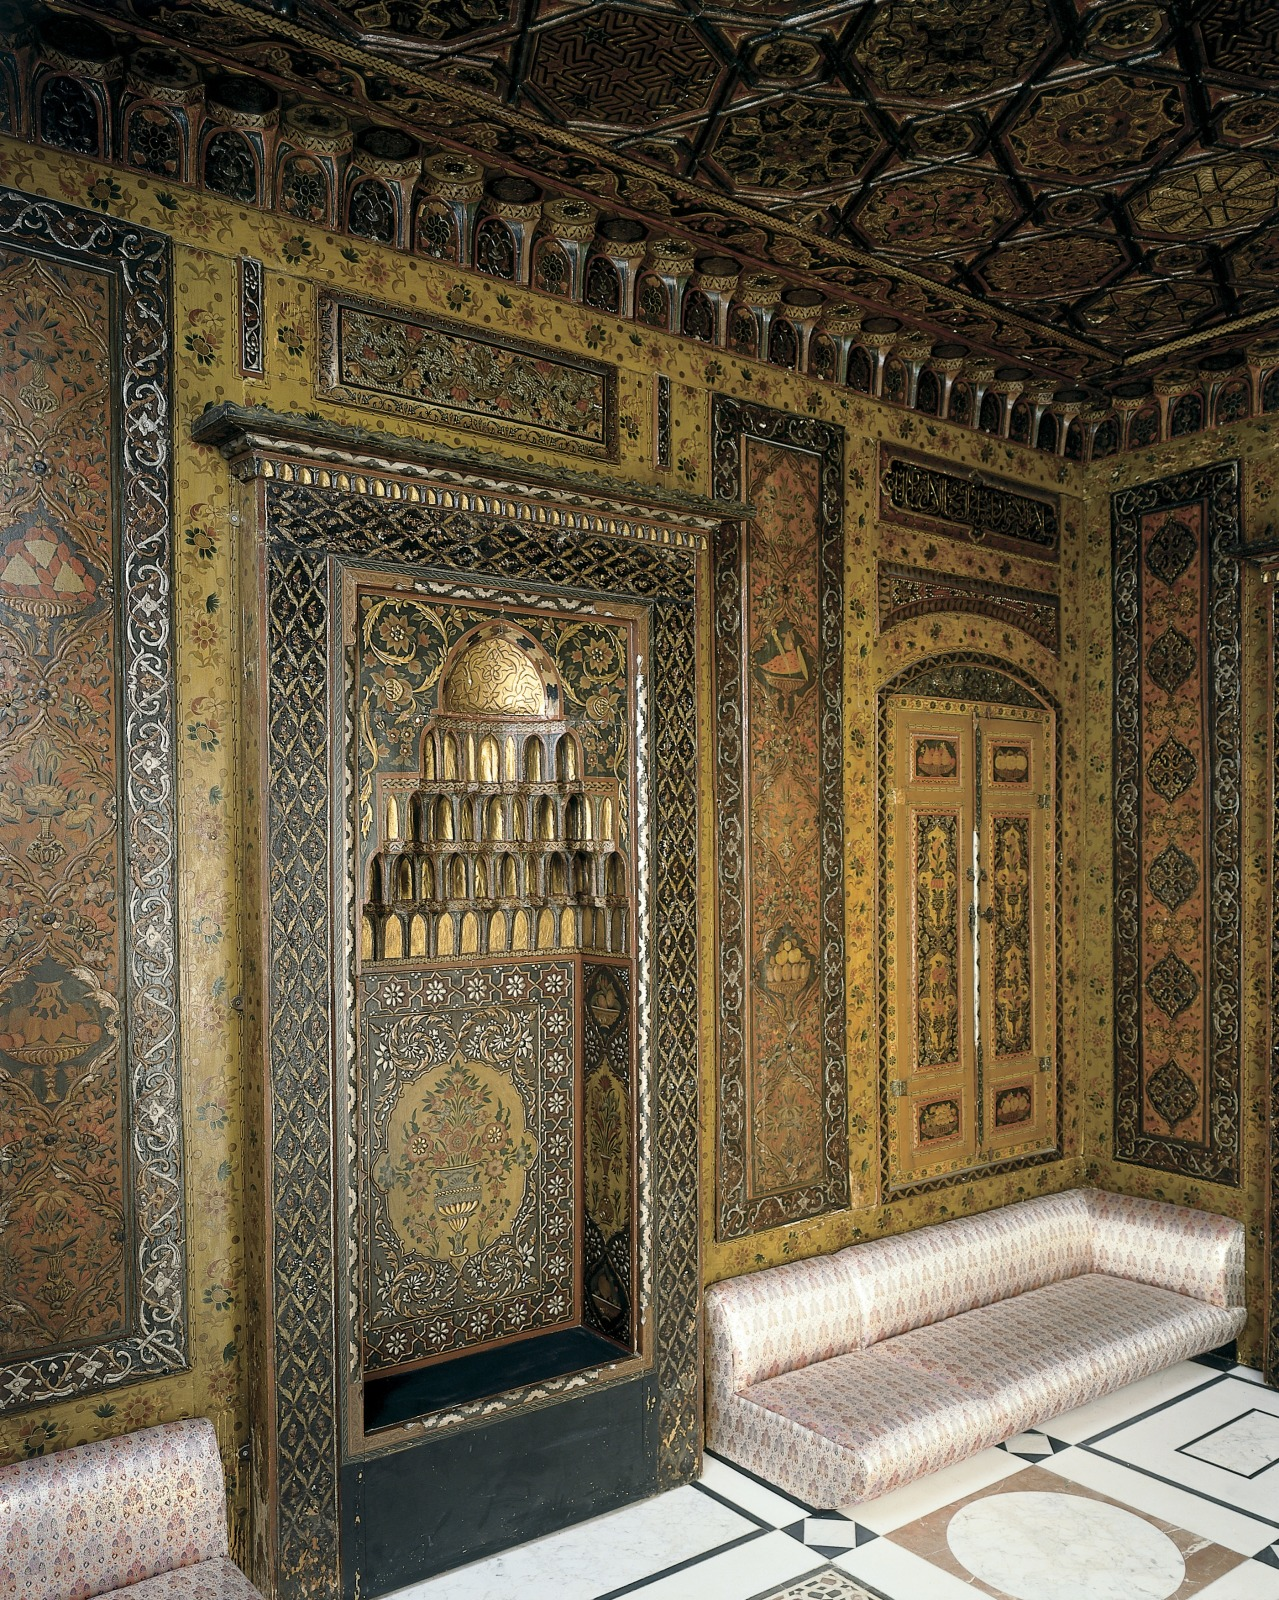 Period Room from Damascus